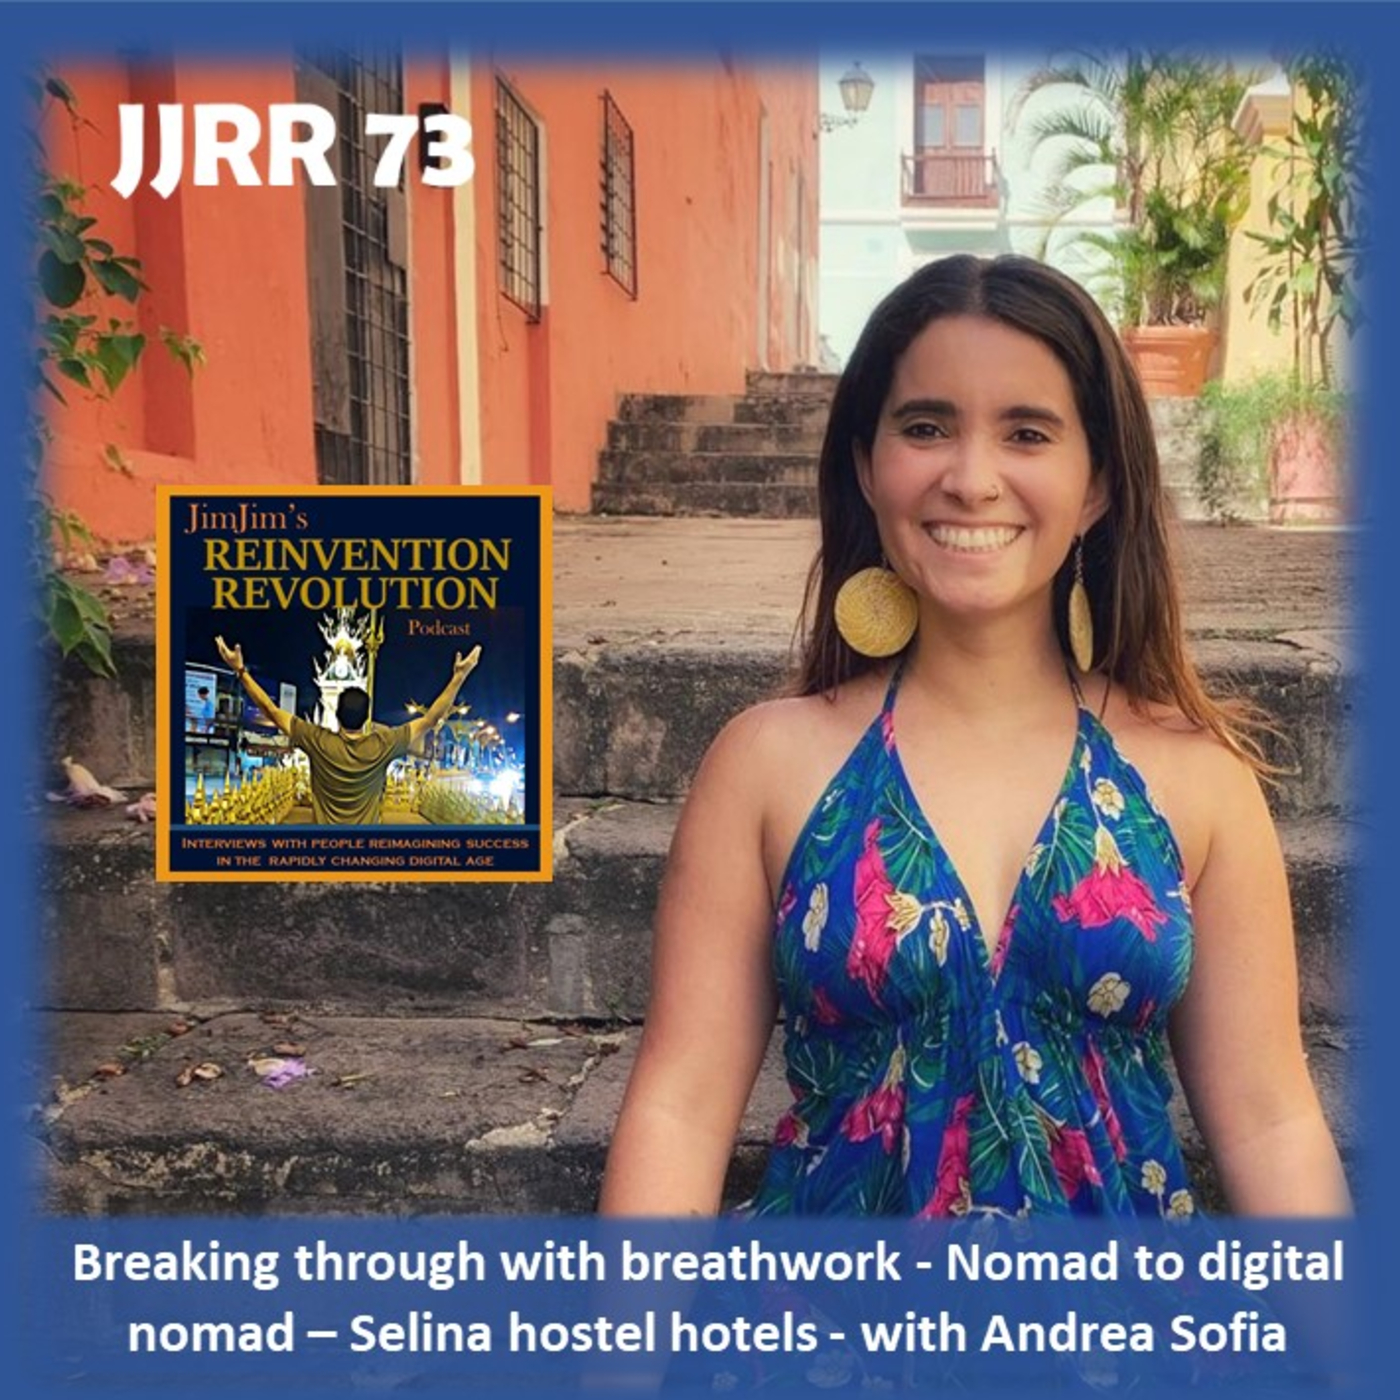 JJRR 73 Breaking through with breathwork – Nomad to digital nomad – Selina hostel hotels – with Andrea Sofia